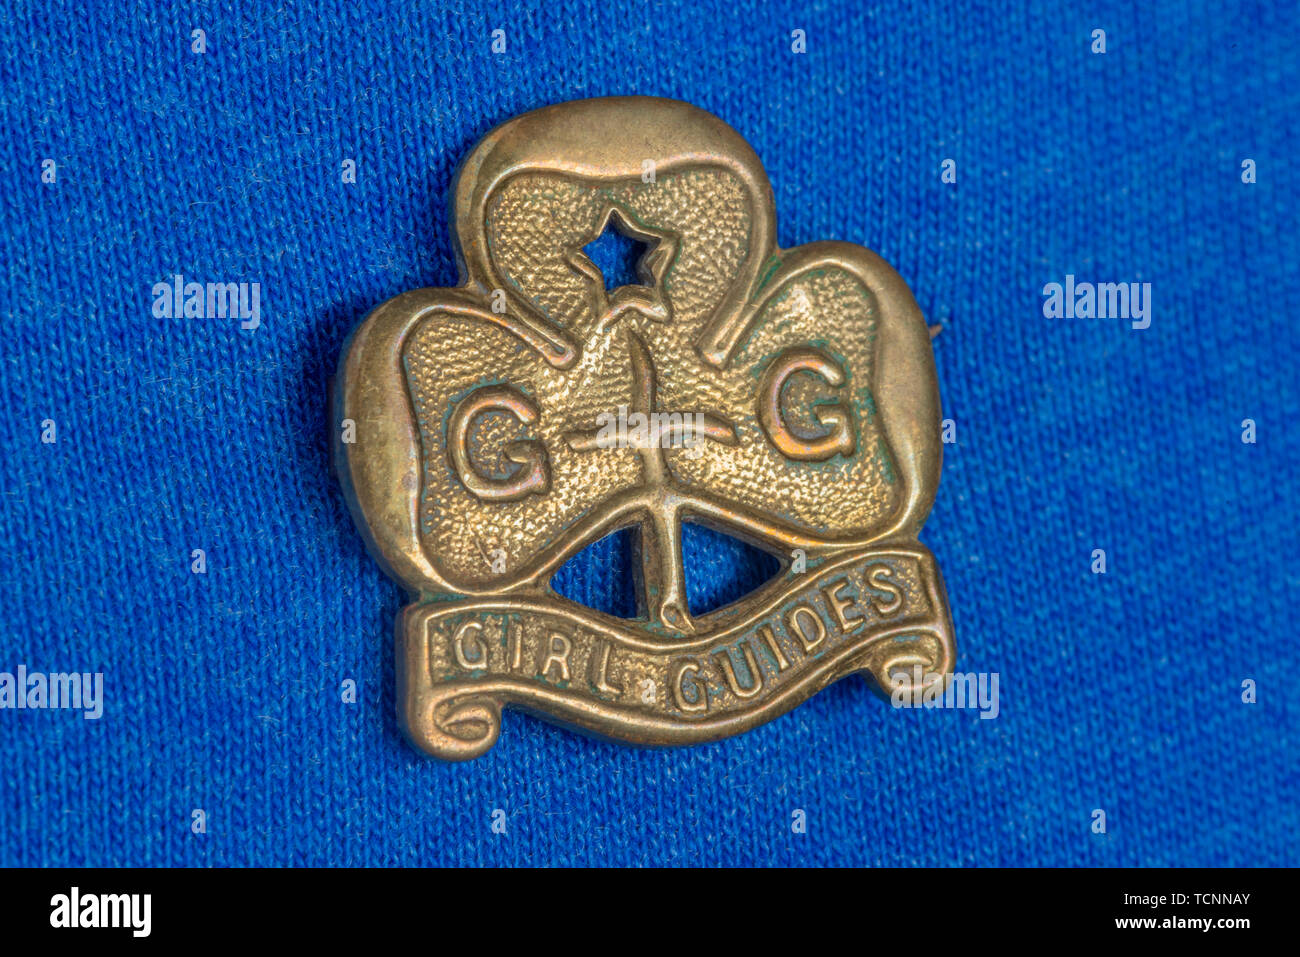 A vintage brass Girl Guides badge shot on a blue cotton background. - Stock Image